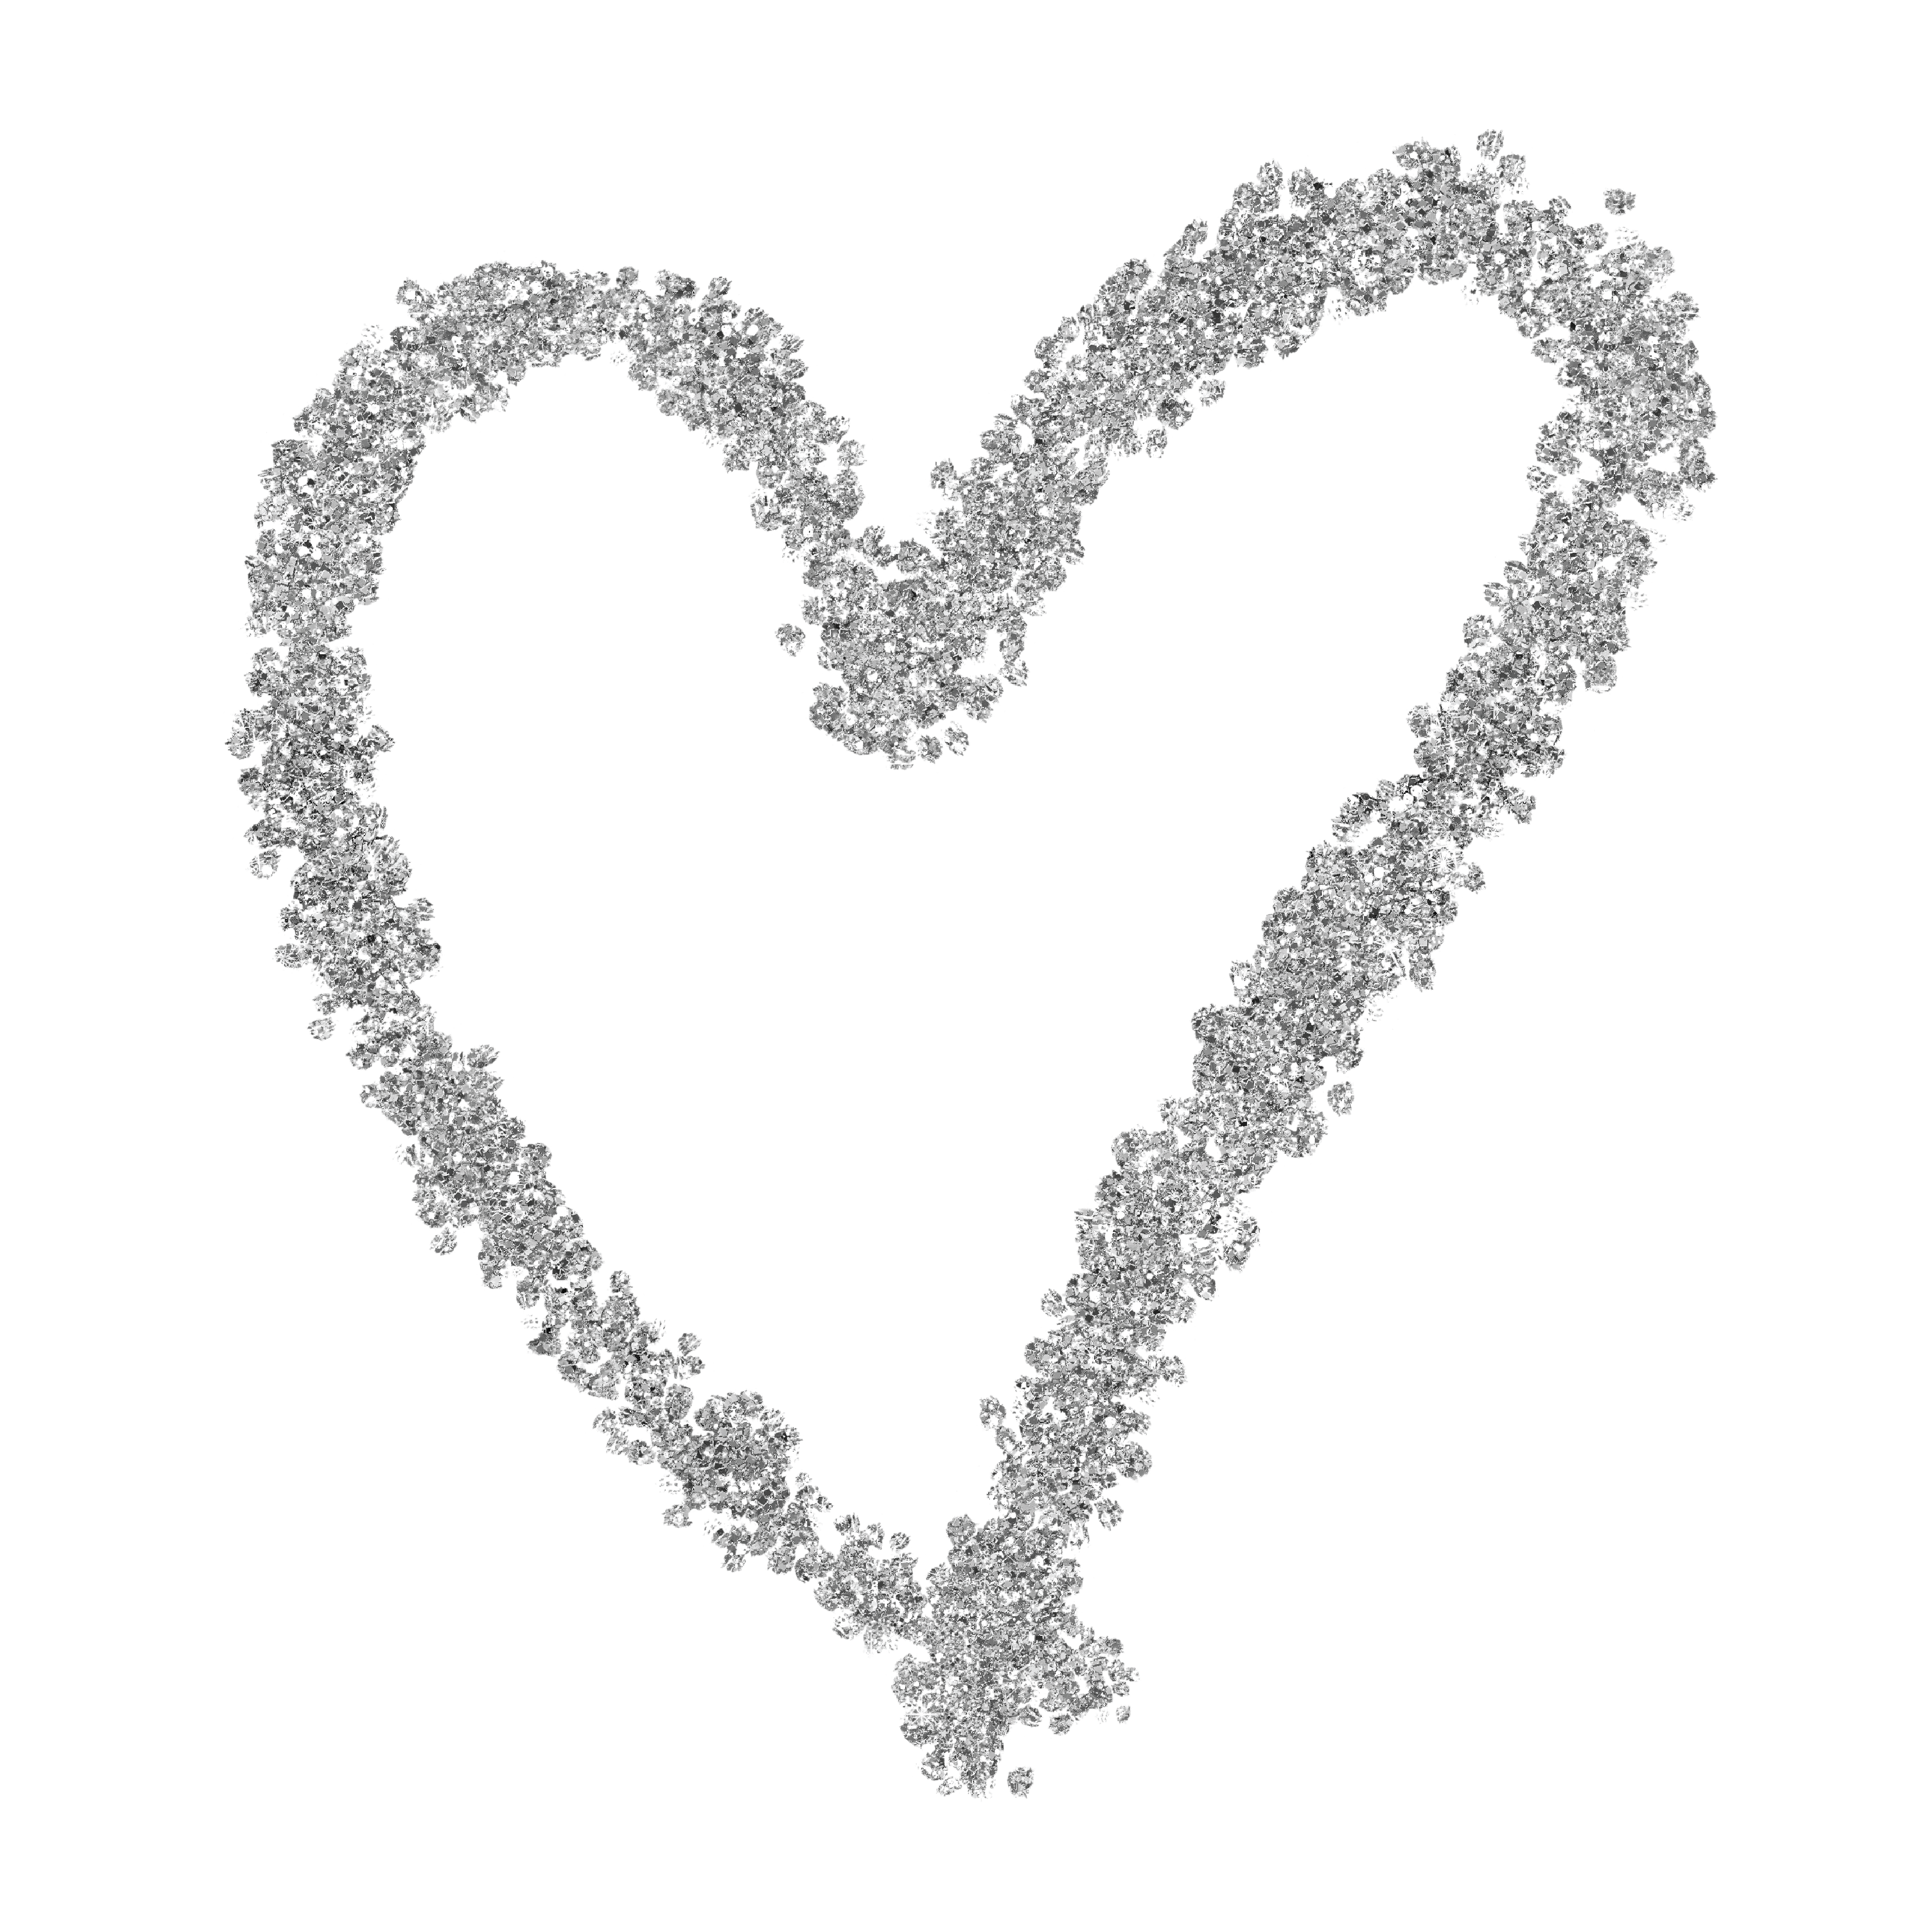 Silver glitter clipart image royalty free download Silver Glitter Heart Web Flair Graphic image royalty free download